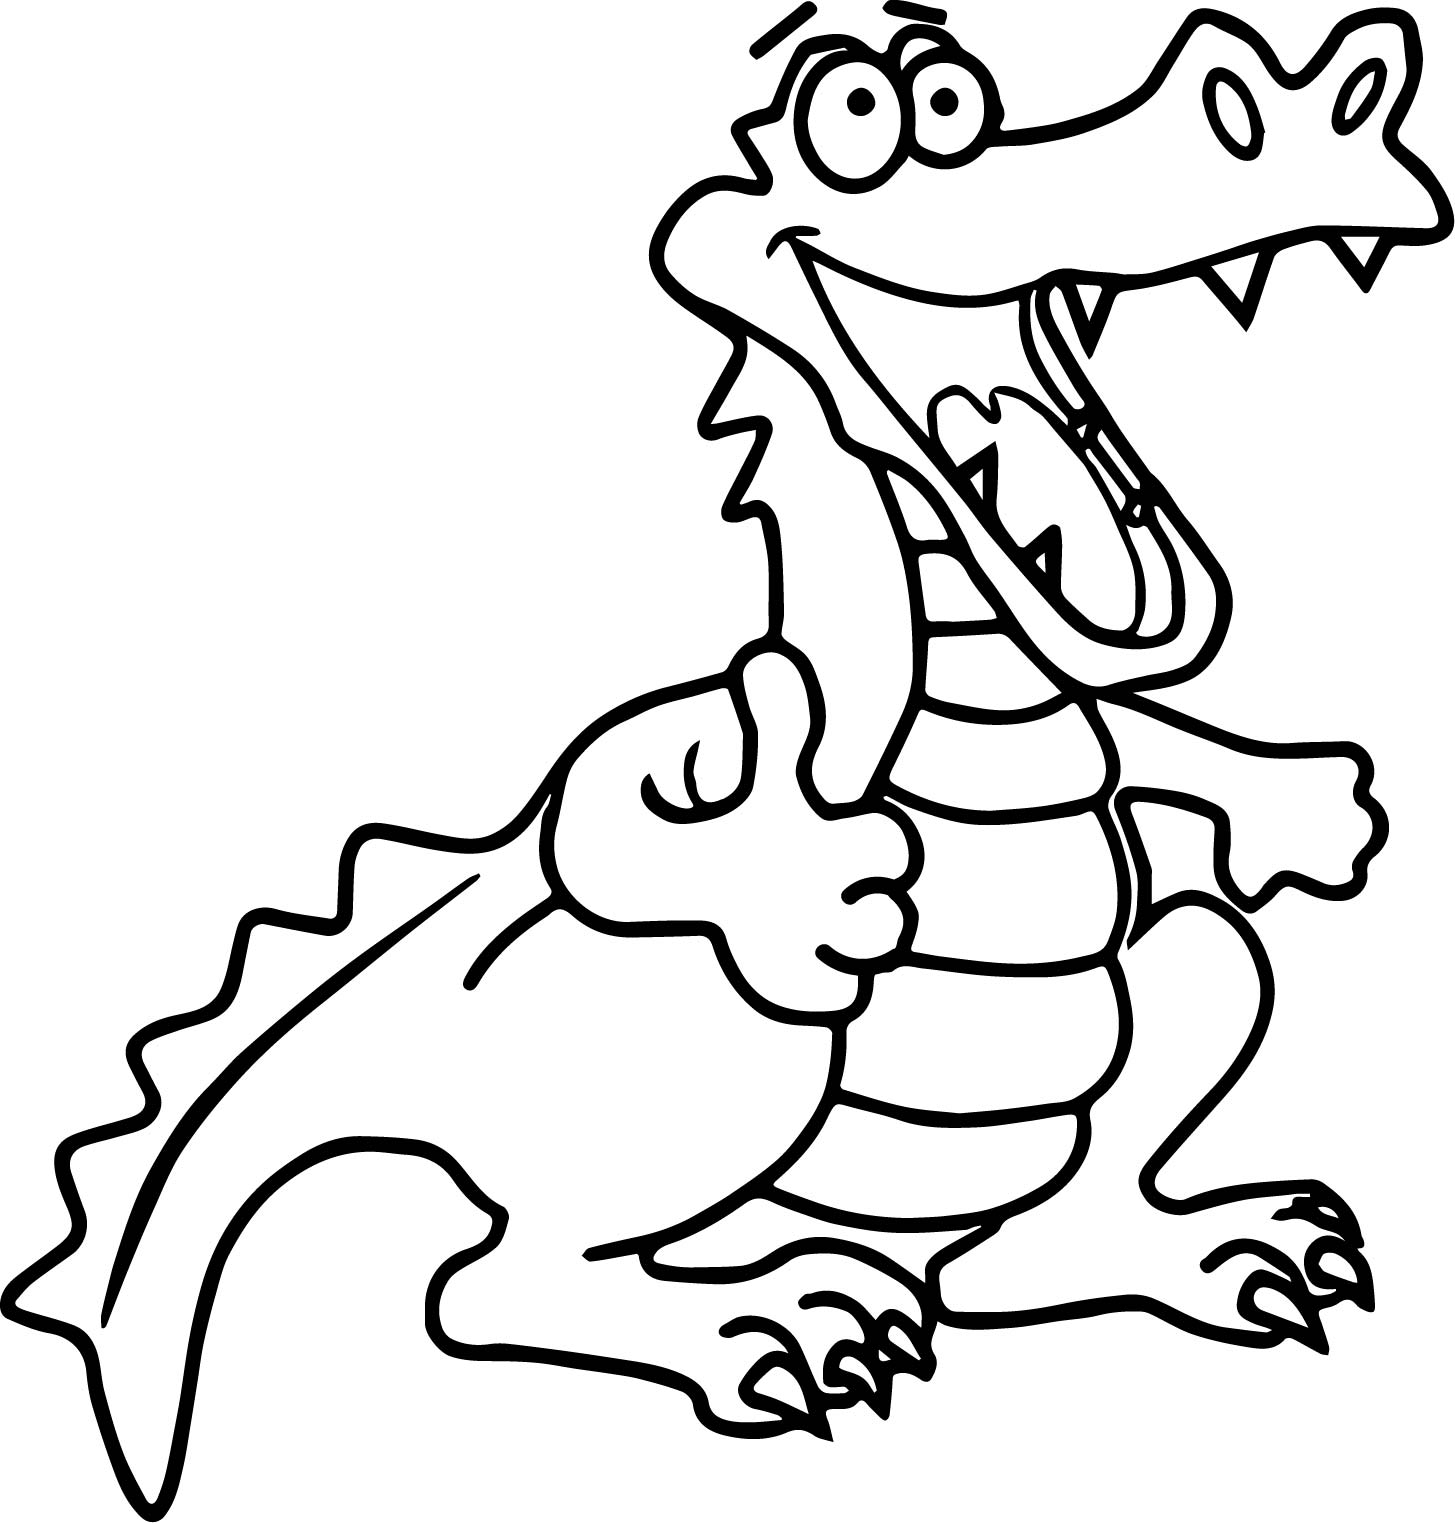 happy crocodile alligator coloring page - Alligator Coloring Page